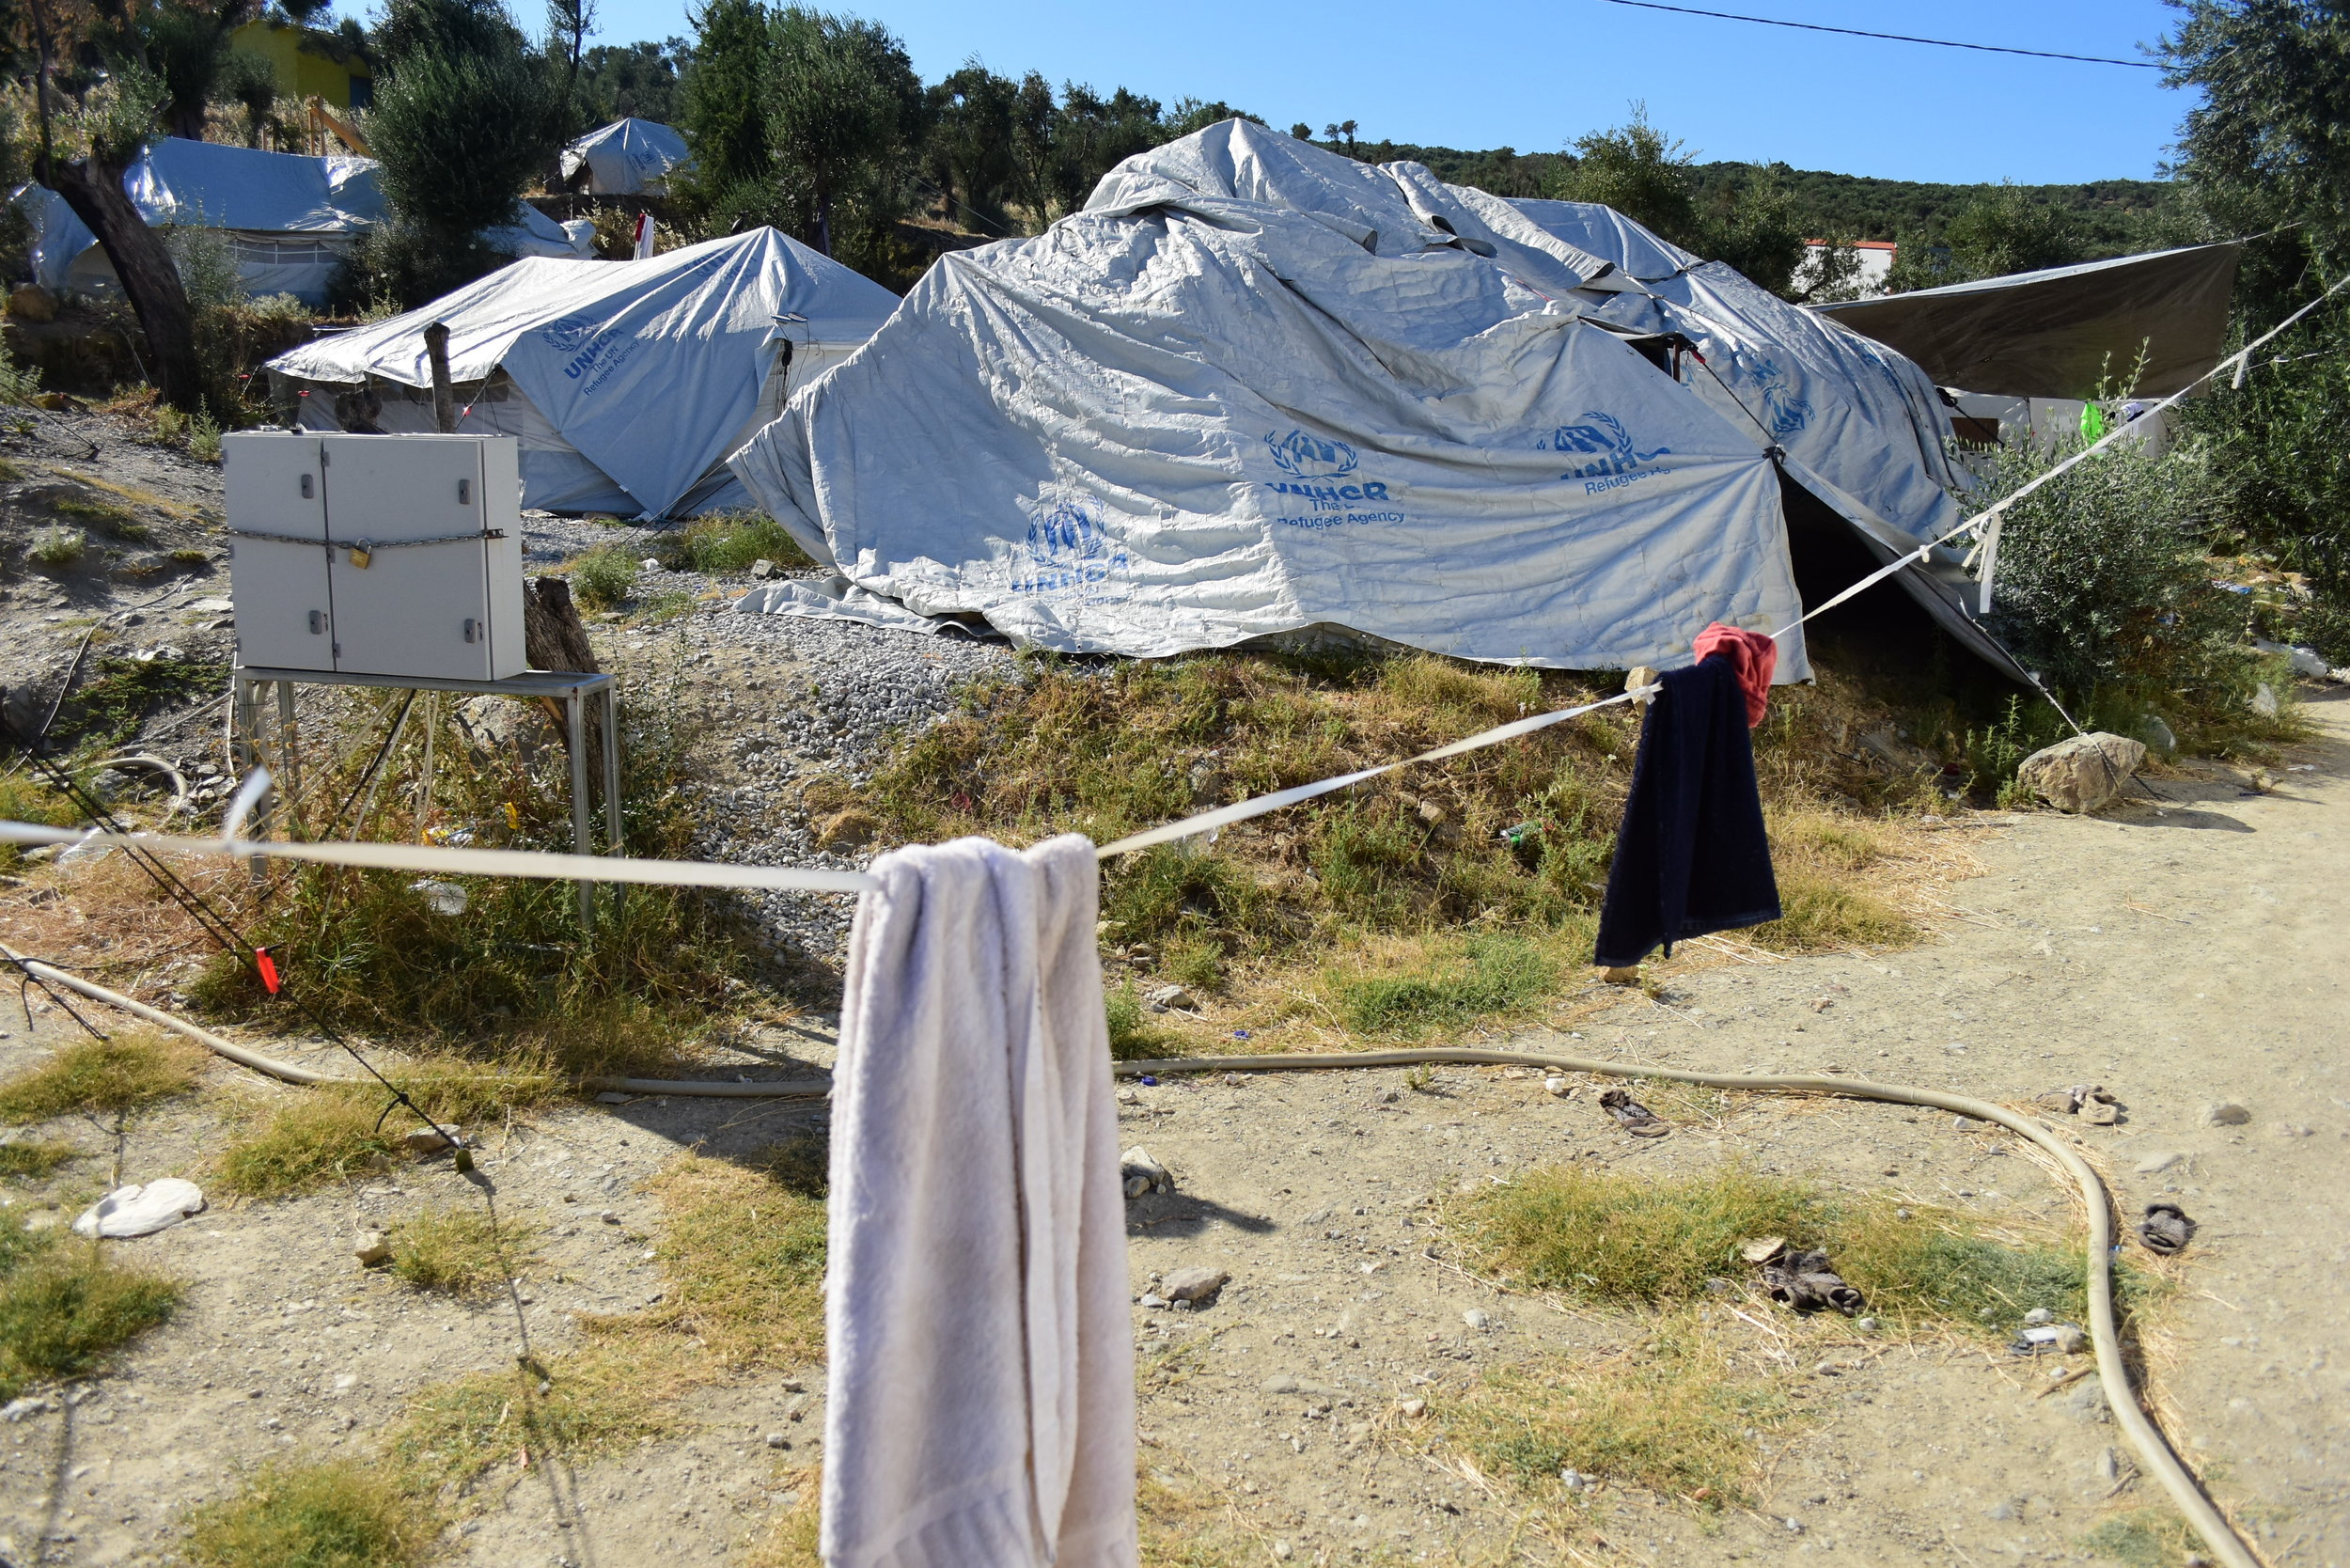 """An impromptu, overflow site hosting dozens of refugees outside Moria, the """"hotspot"""" camp on the island of Lesvos. In this site, people complained of snakes entering their tents."""